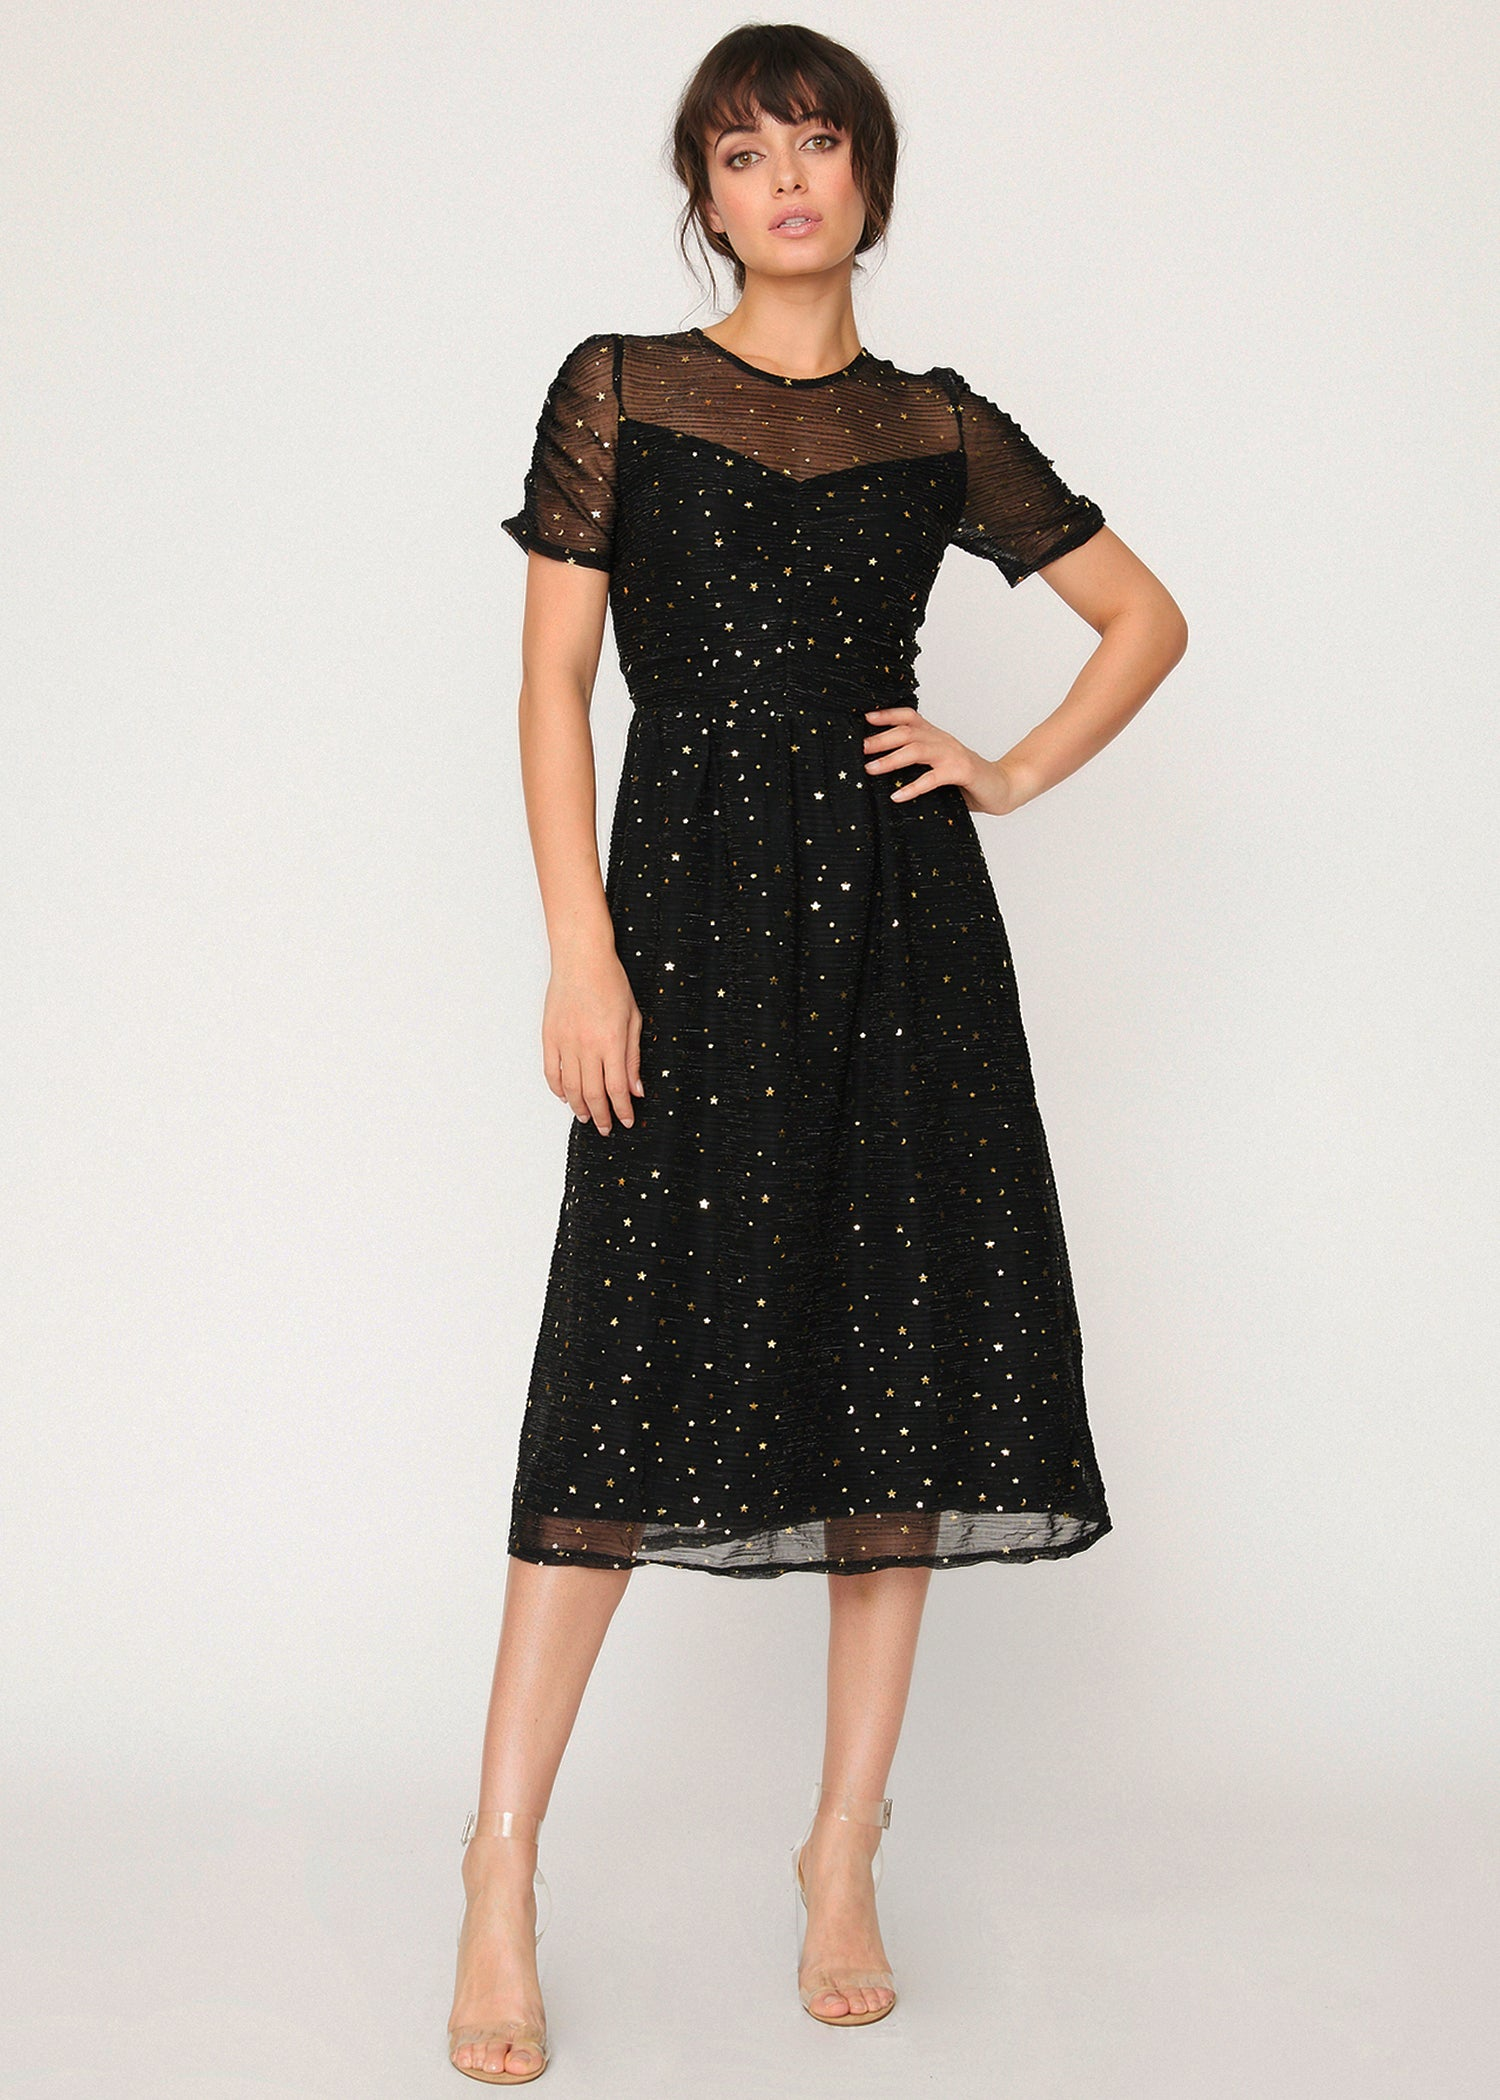 Constellation Midi Dress